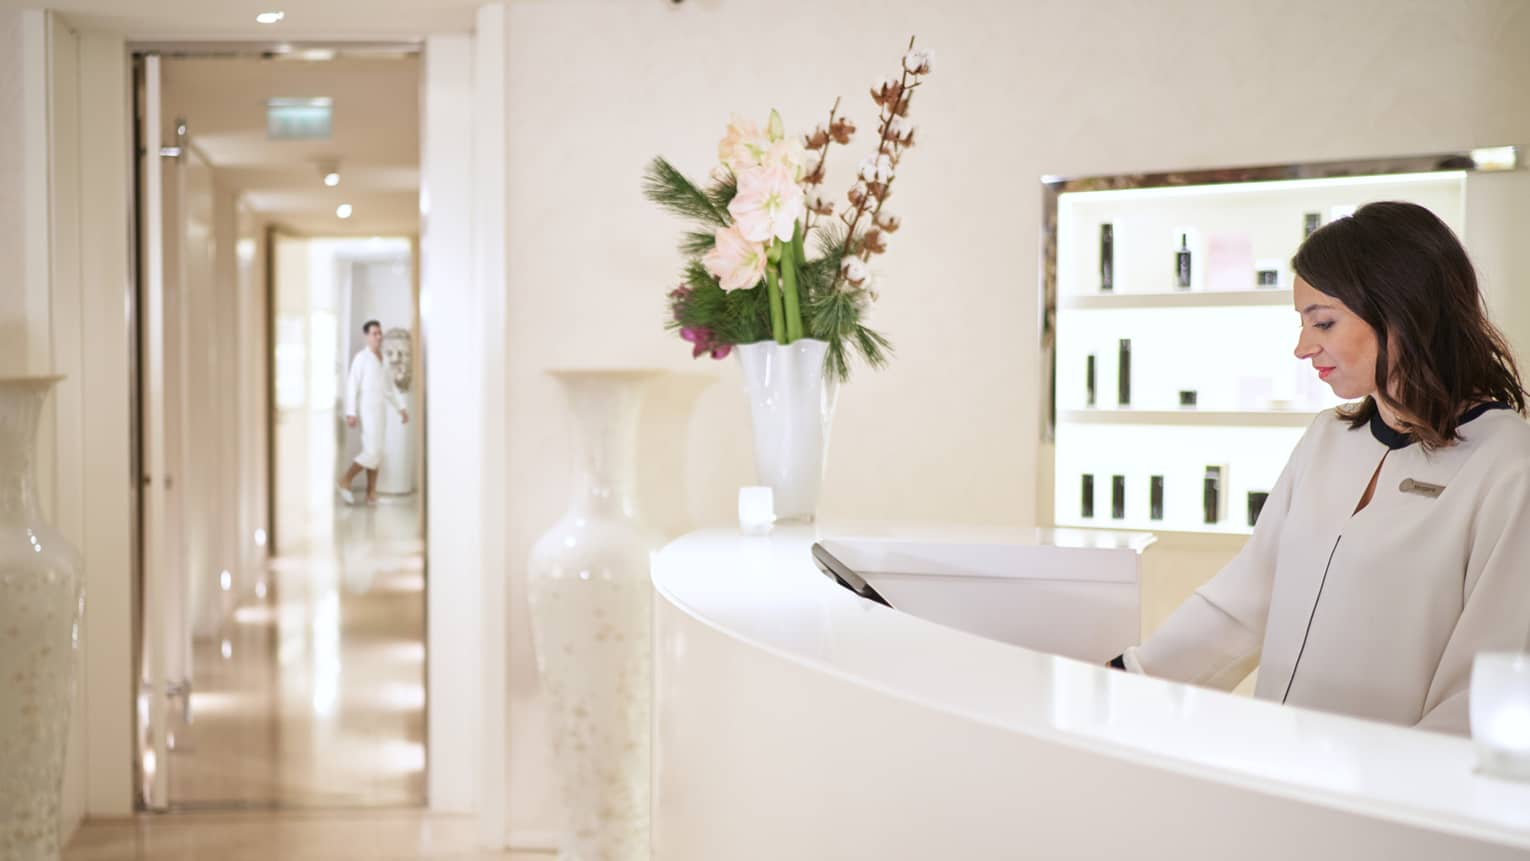 Staff member in white jacket standing behind curved white reception desk with flower vase, view into spa hallway